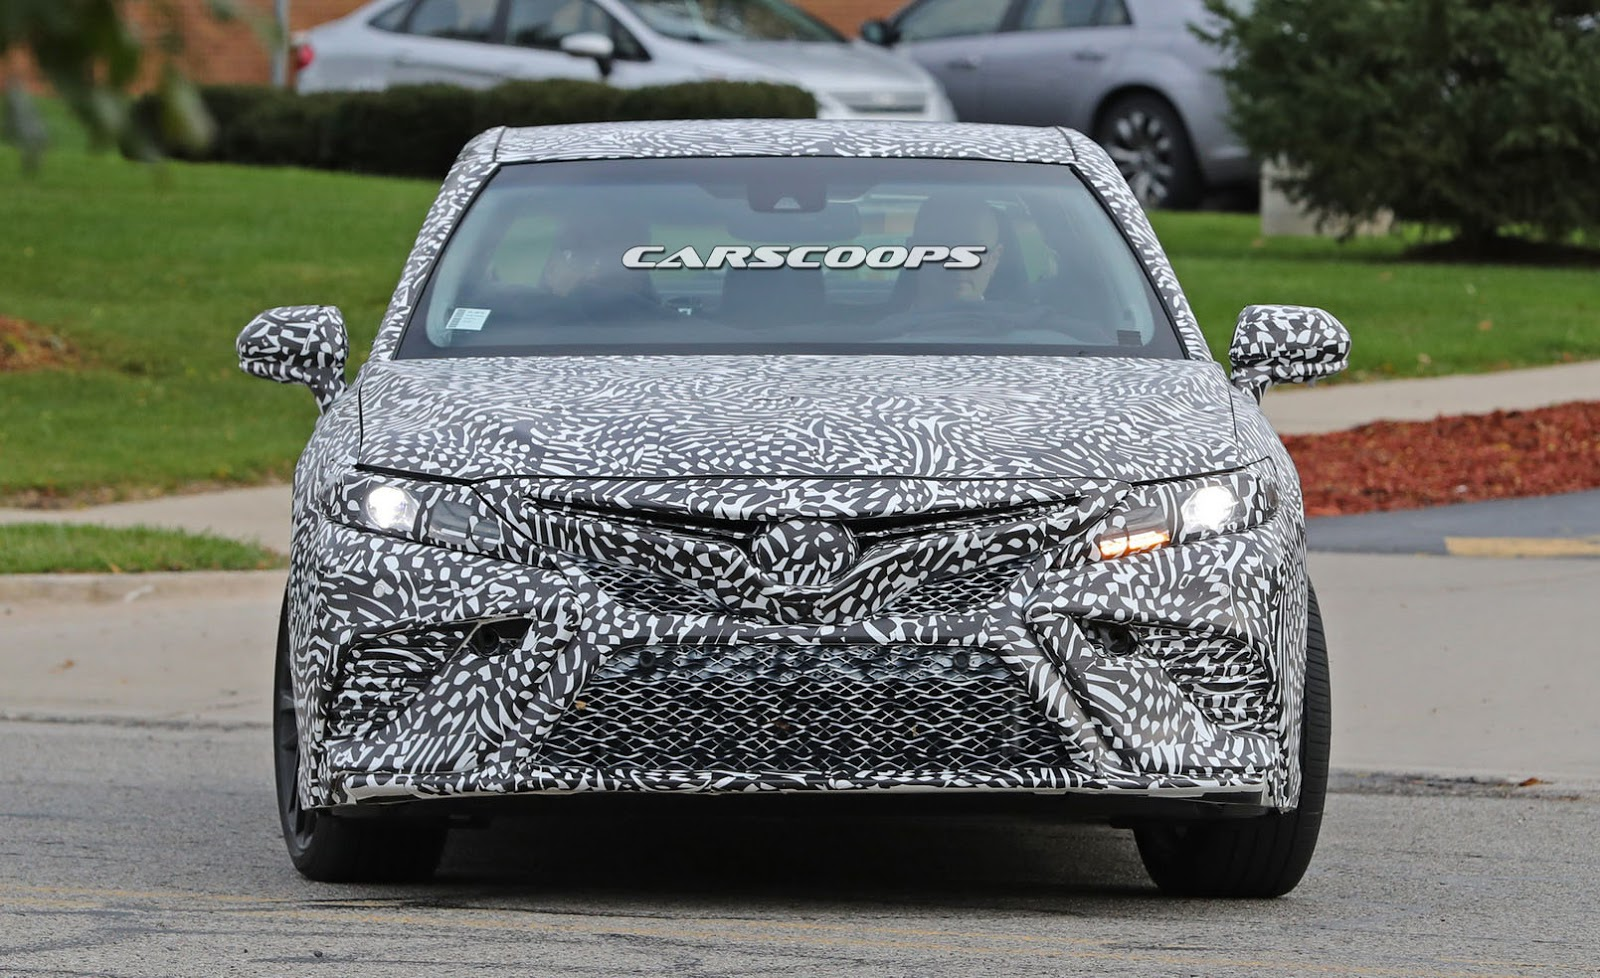 Interior New Yaris Trd 2018 Agya 1.2 G Mt Spied: Is Toyota Cooking A Camry Performance ...